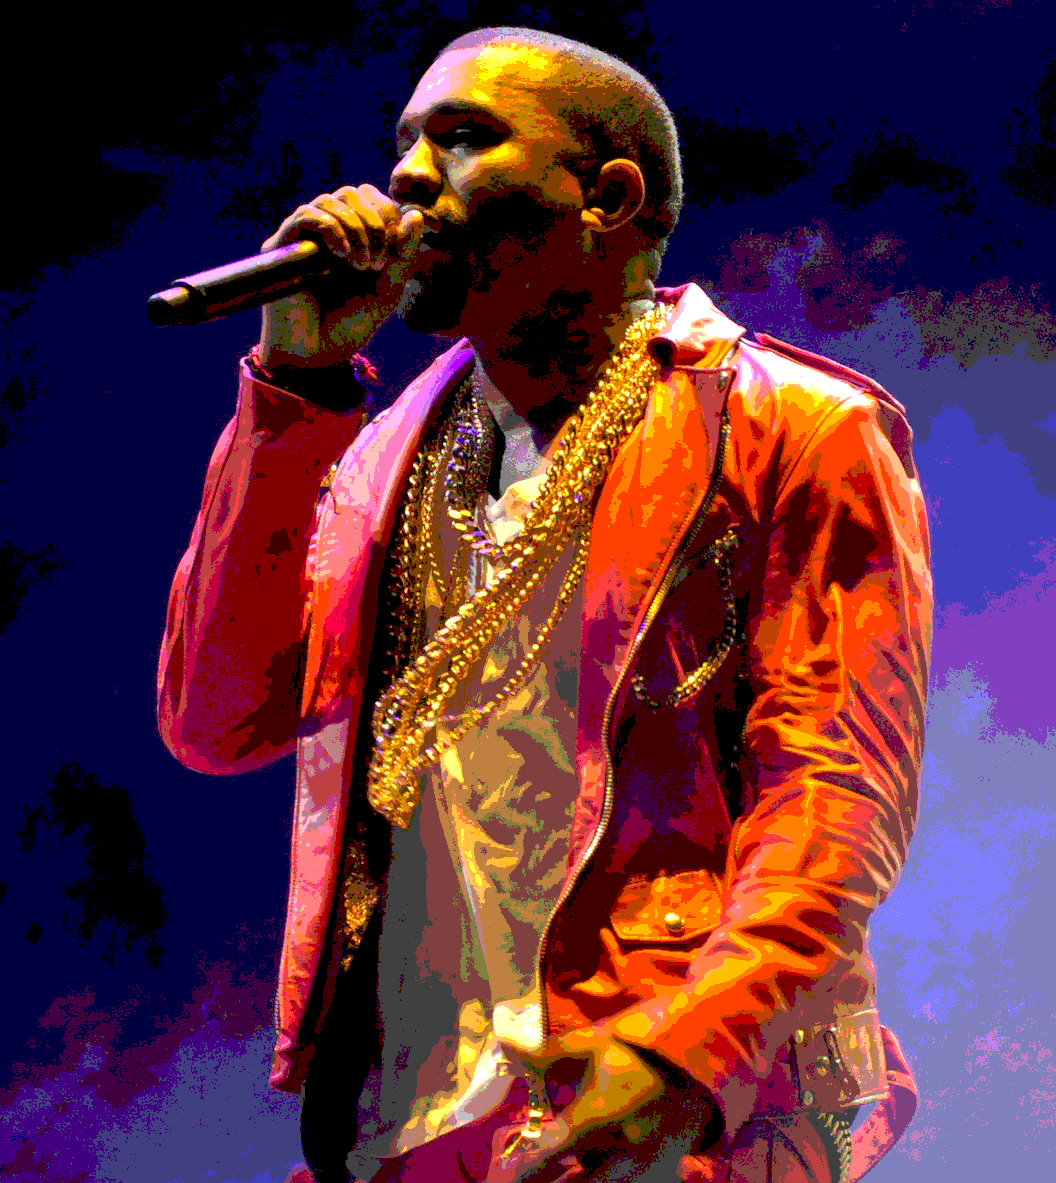 Kanye performs at Lollapalooza